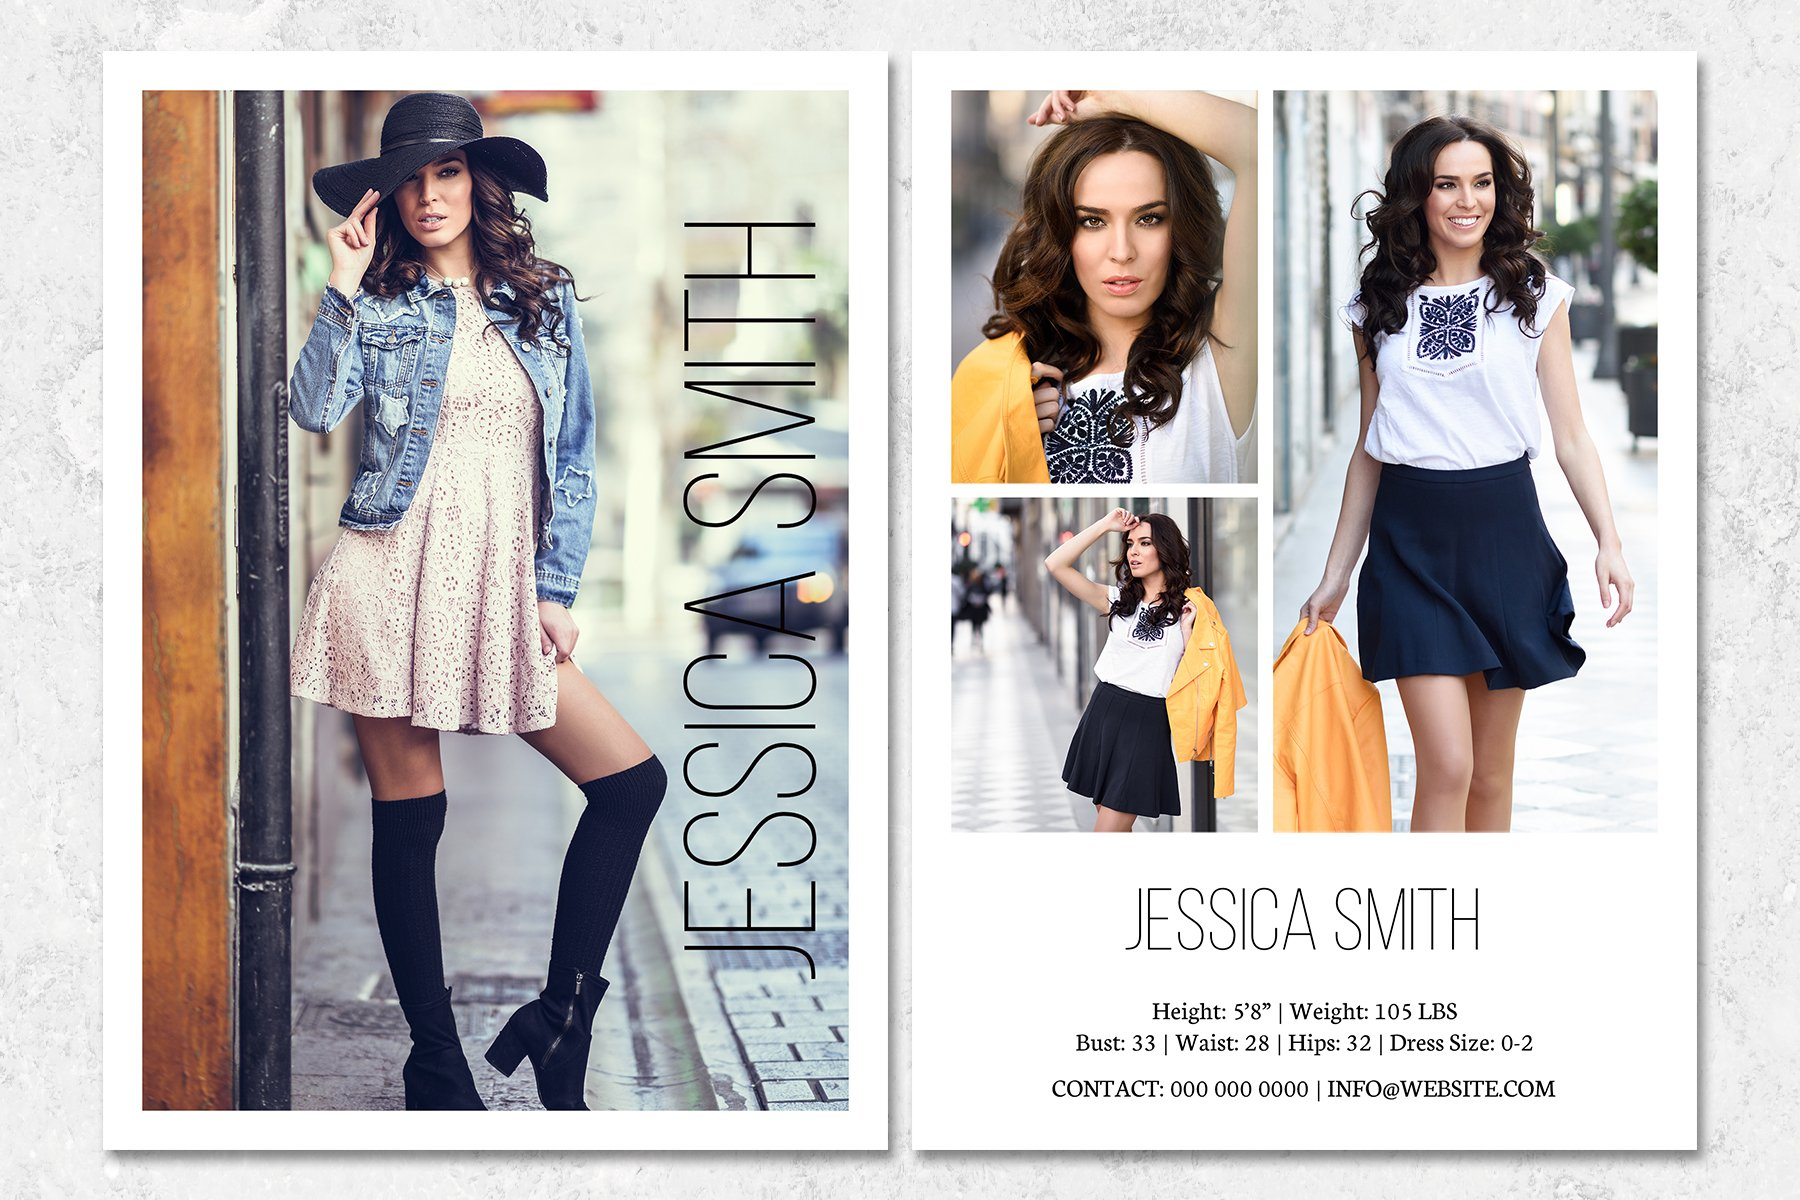 Fashion Model Comp Card Template (21)  Card and Invites Throughout Comp Card Template Download